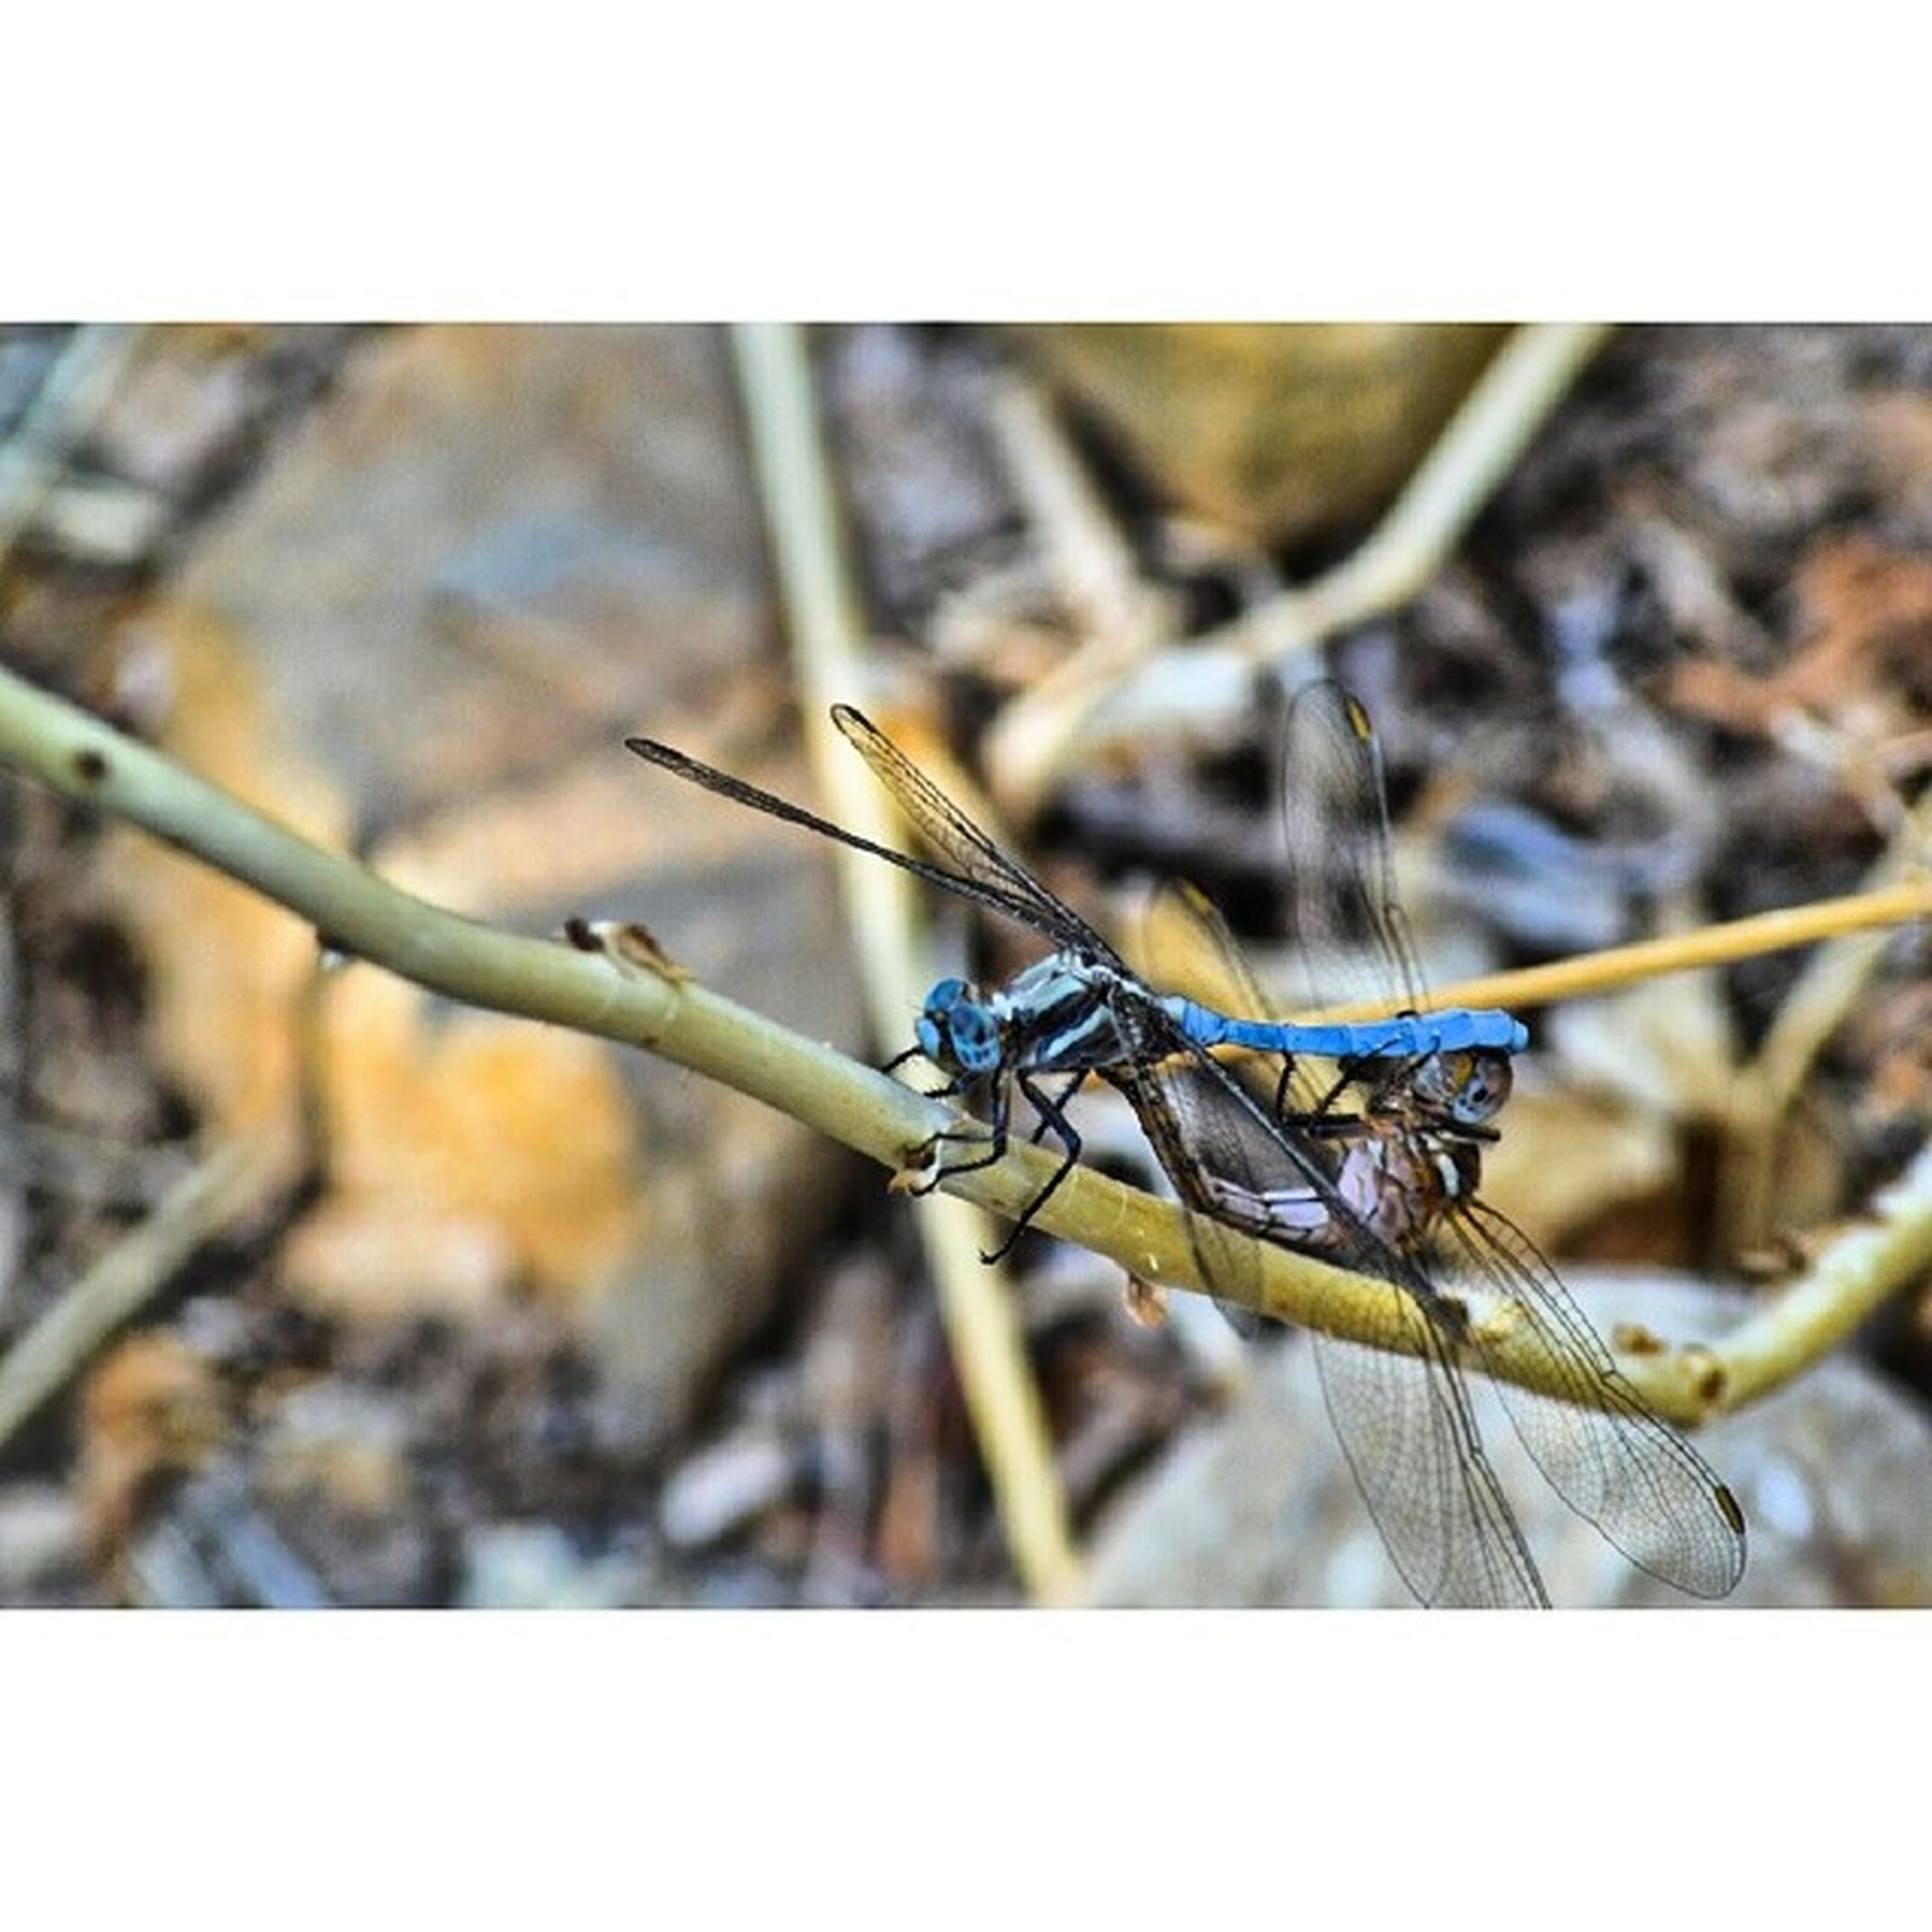 animals in the wild, animal themes, one animal, wildlife, insect, transfer print, perching, auto post production filter, focus on foreground, bird, close-up, full length, selective focus, nature, dragonfly, zoology, day, twig, outdoors, no people